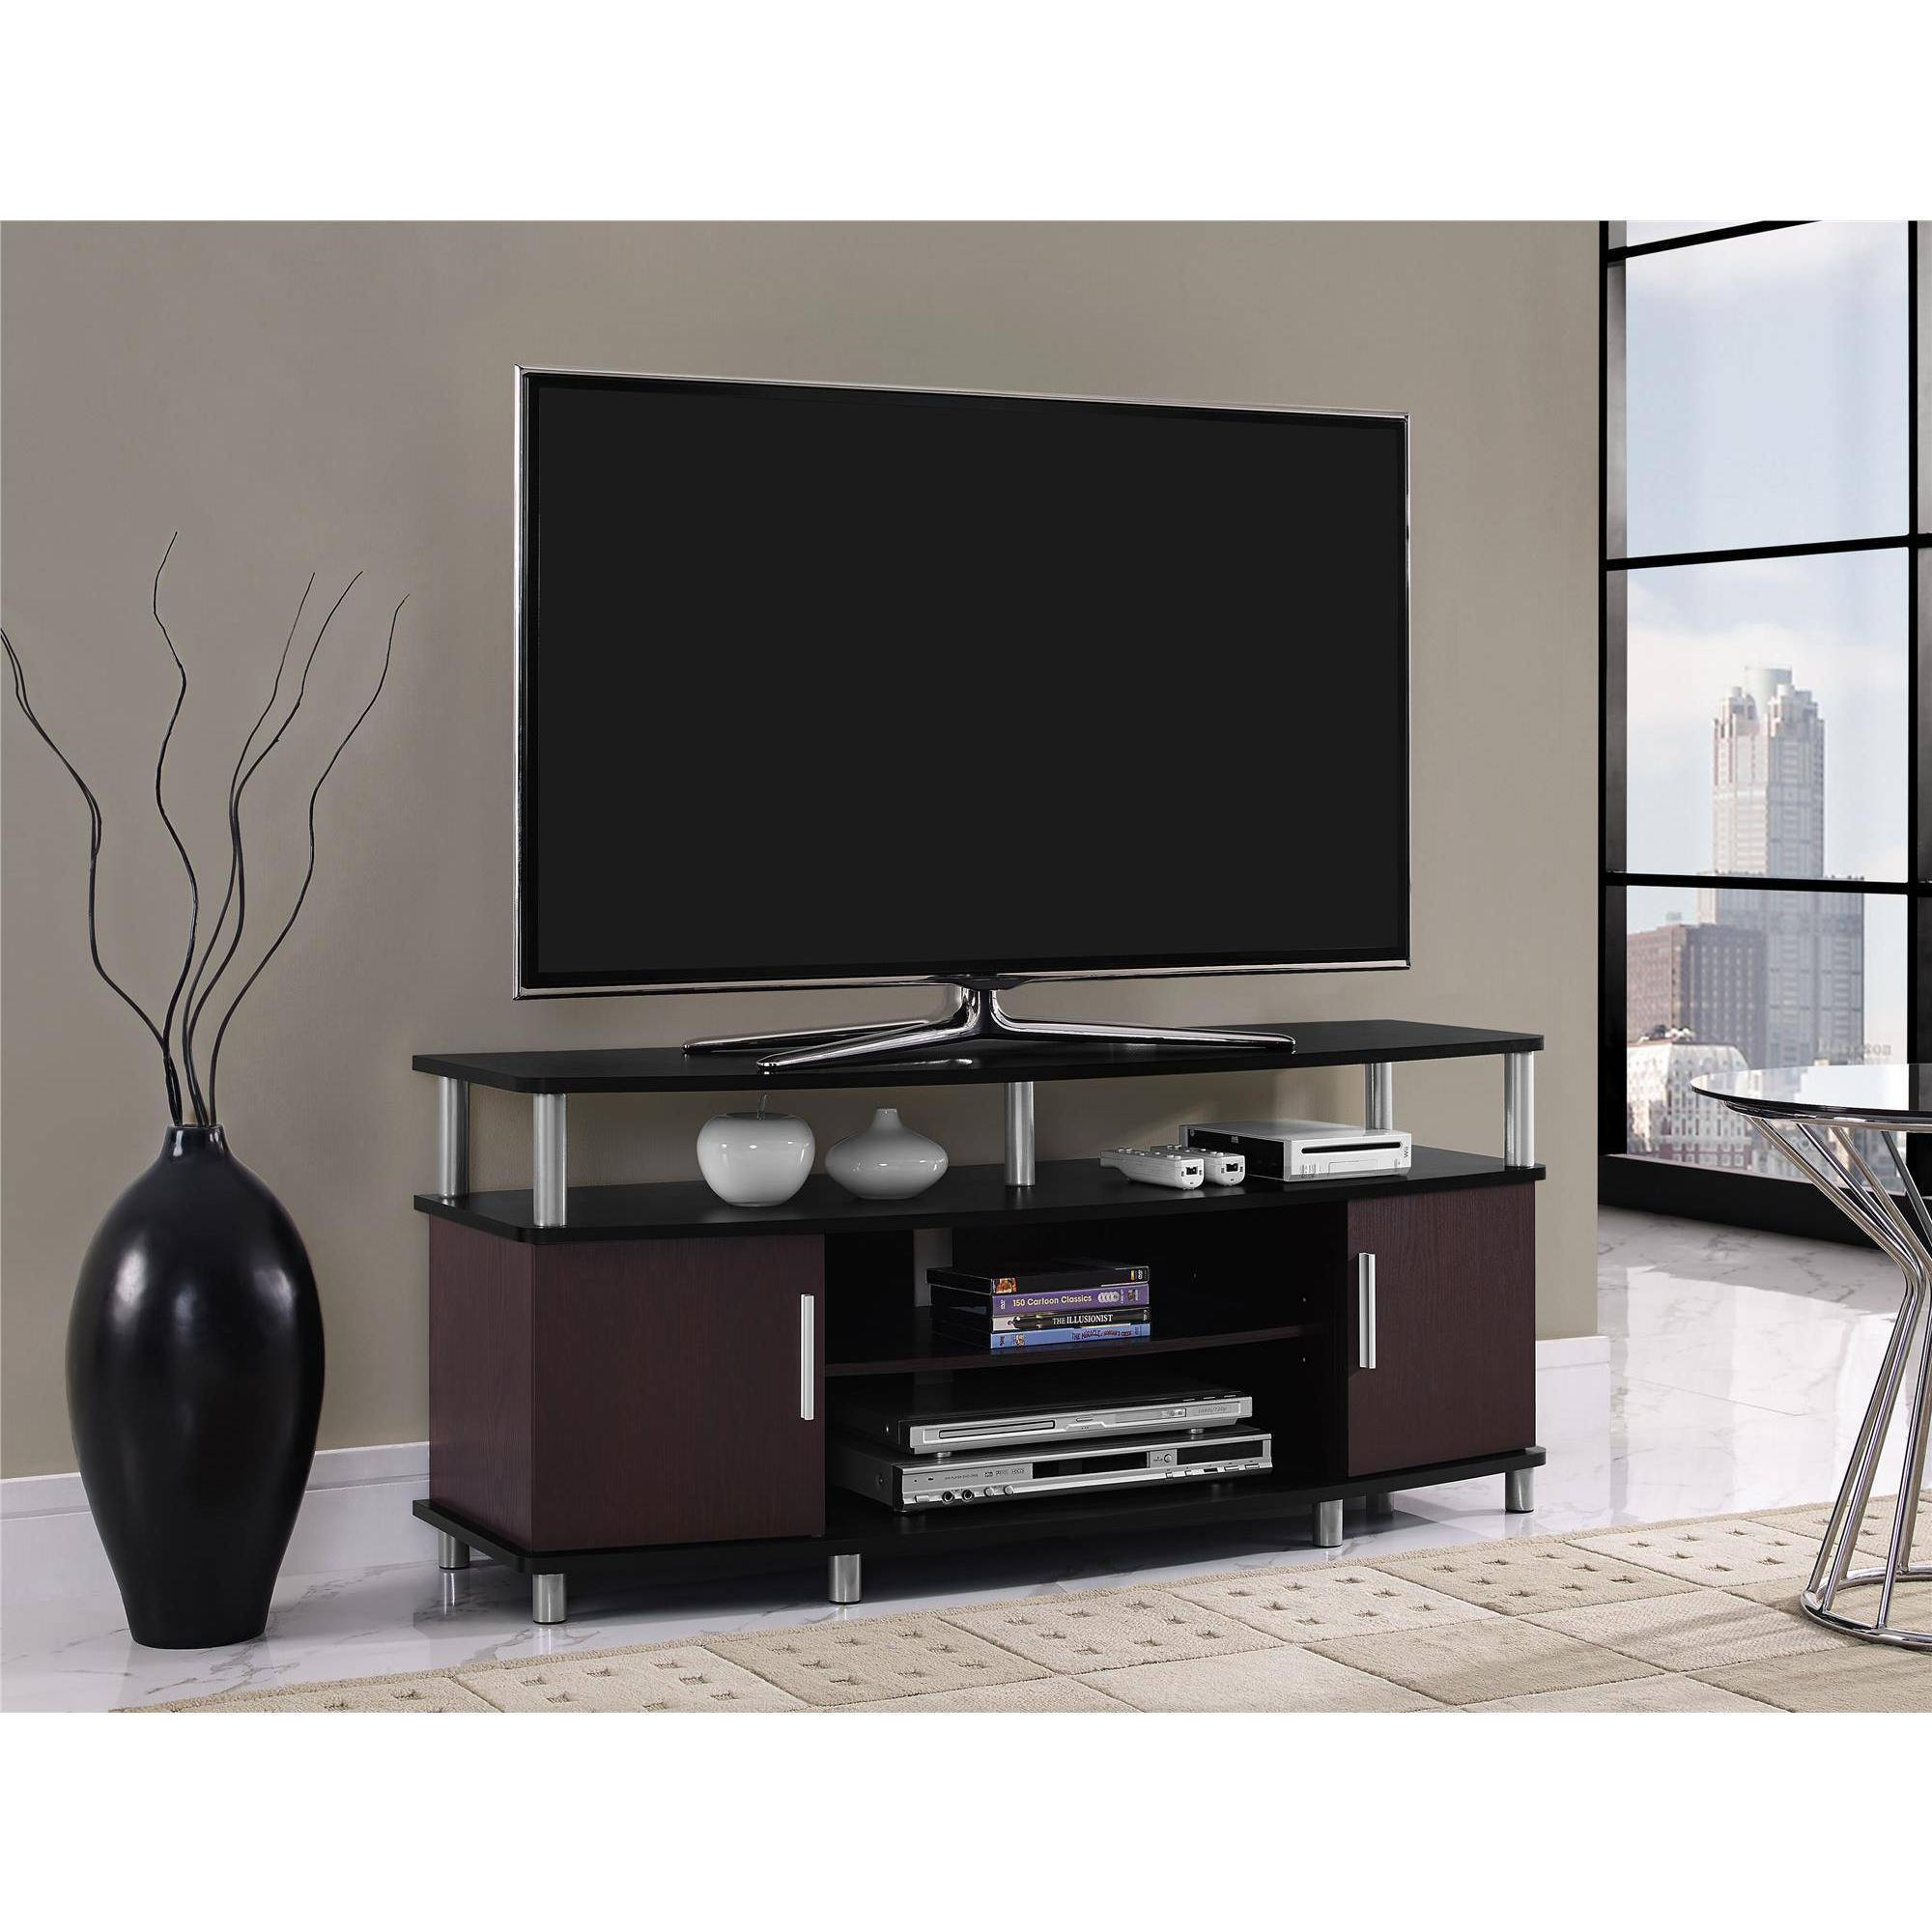 Tv Stands & Entertainment Centers - Walmart throughout Storage Tv Stands (Image 13 of 15)